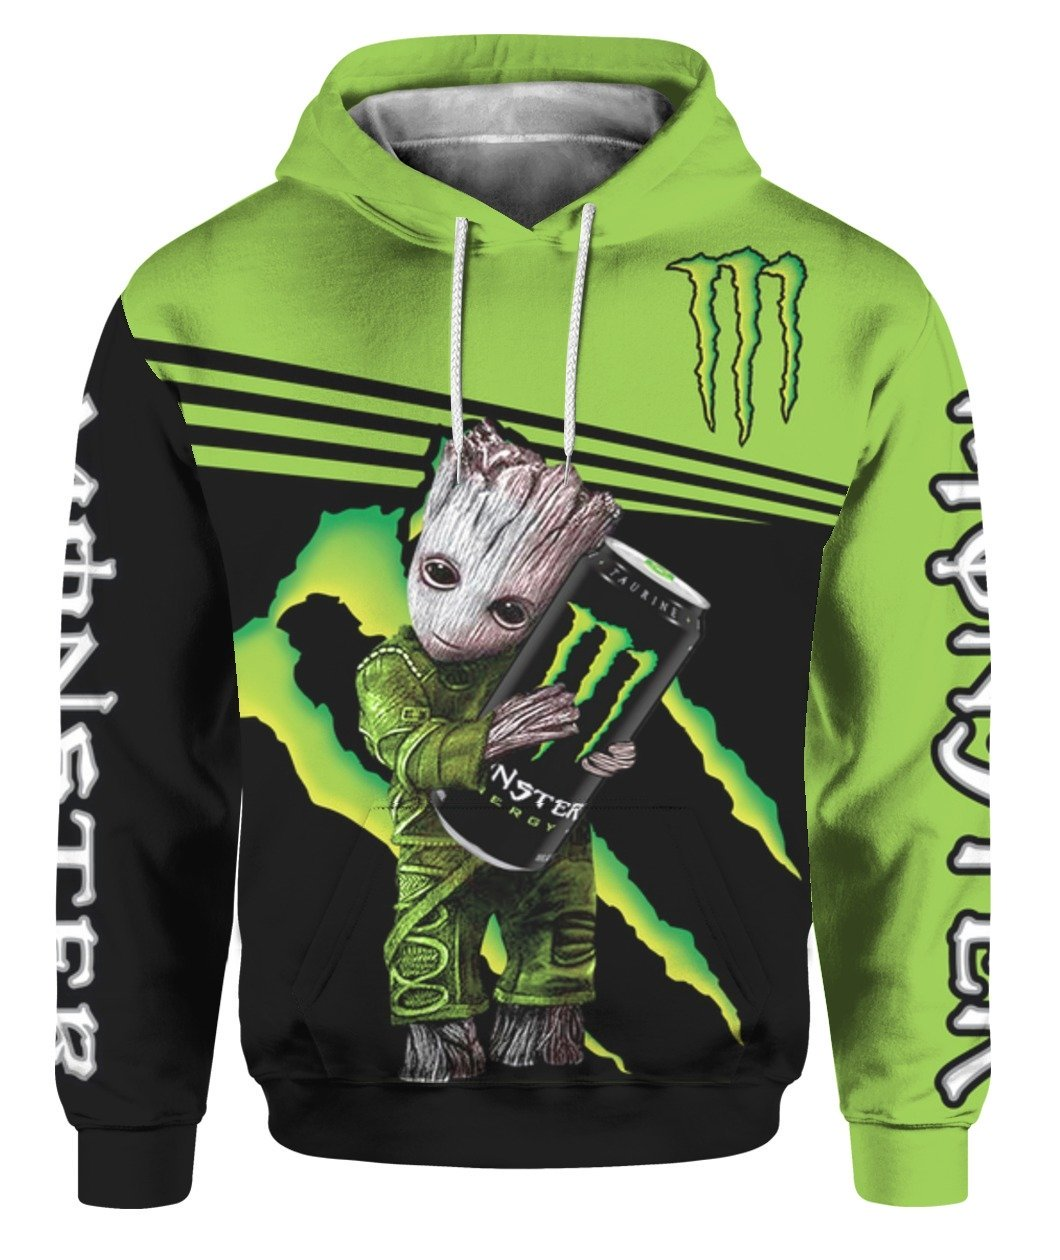 Baby groot and monster energy all over print hoodie 1